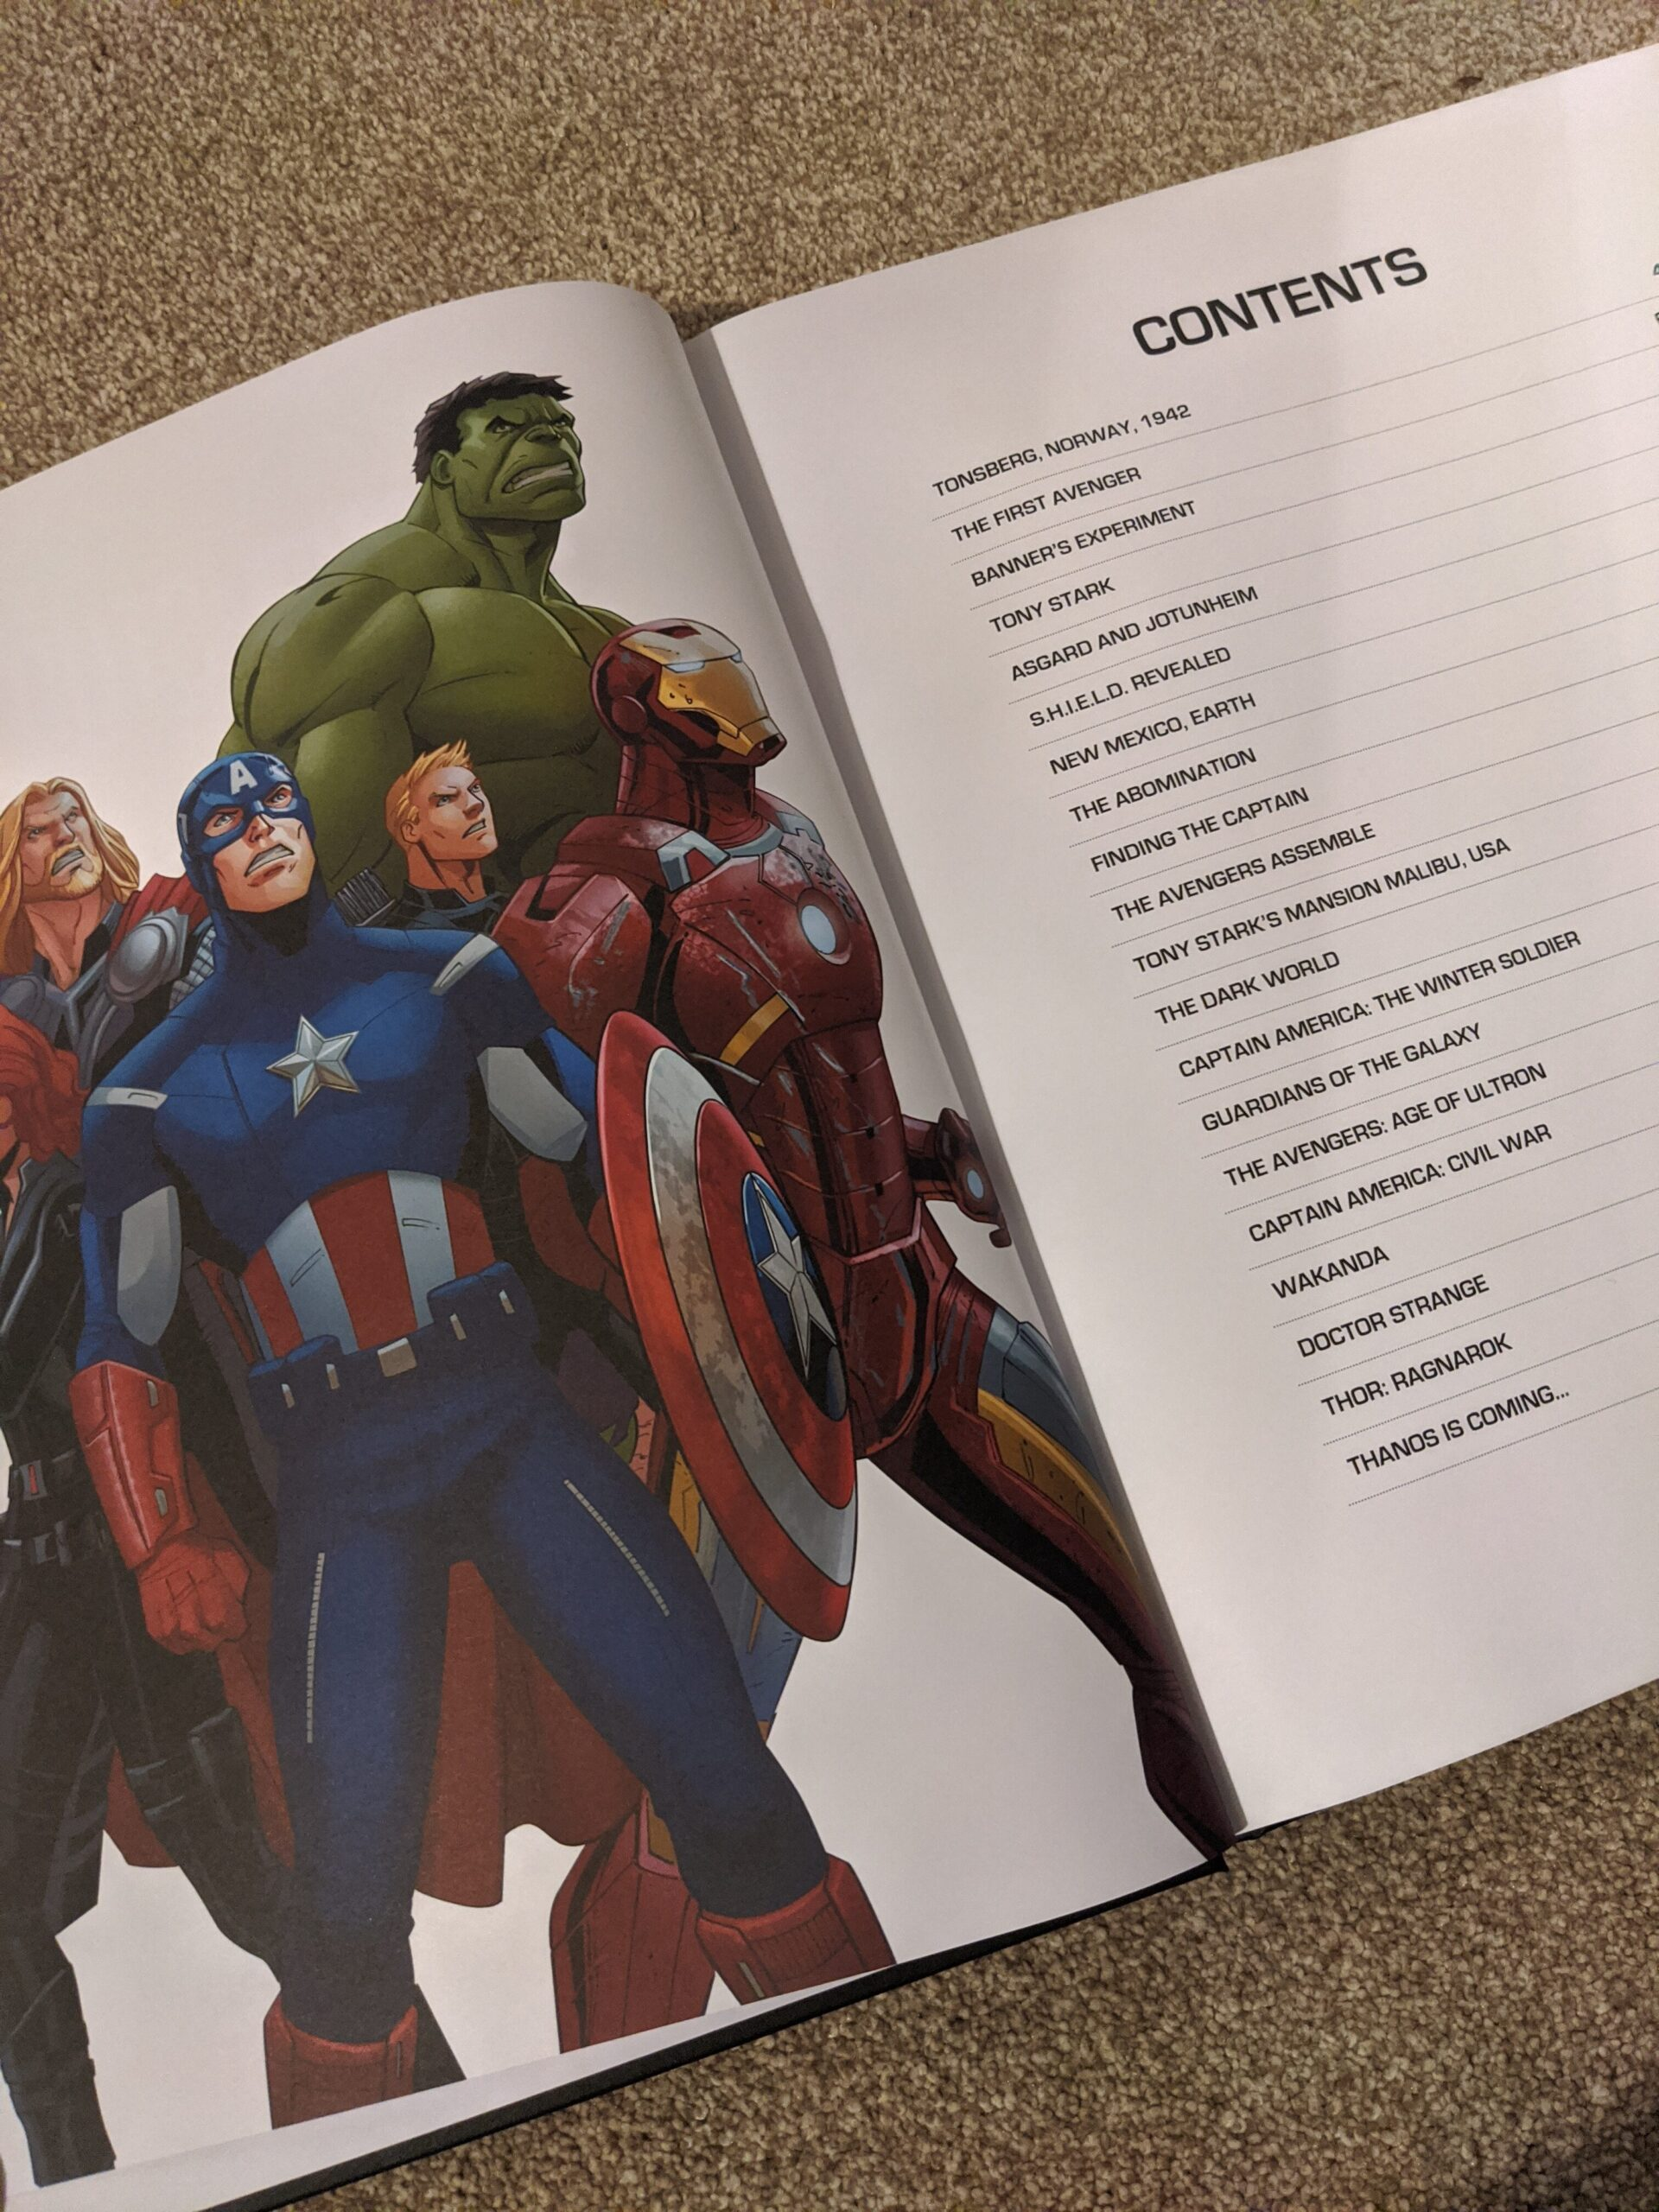 Marvel Studios Anniversary Collection contents